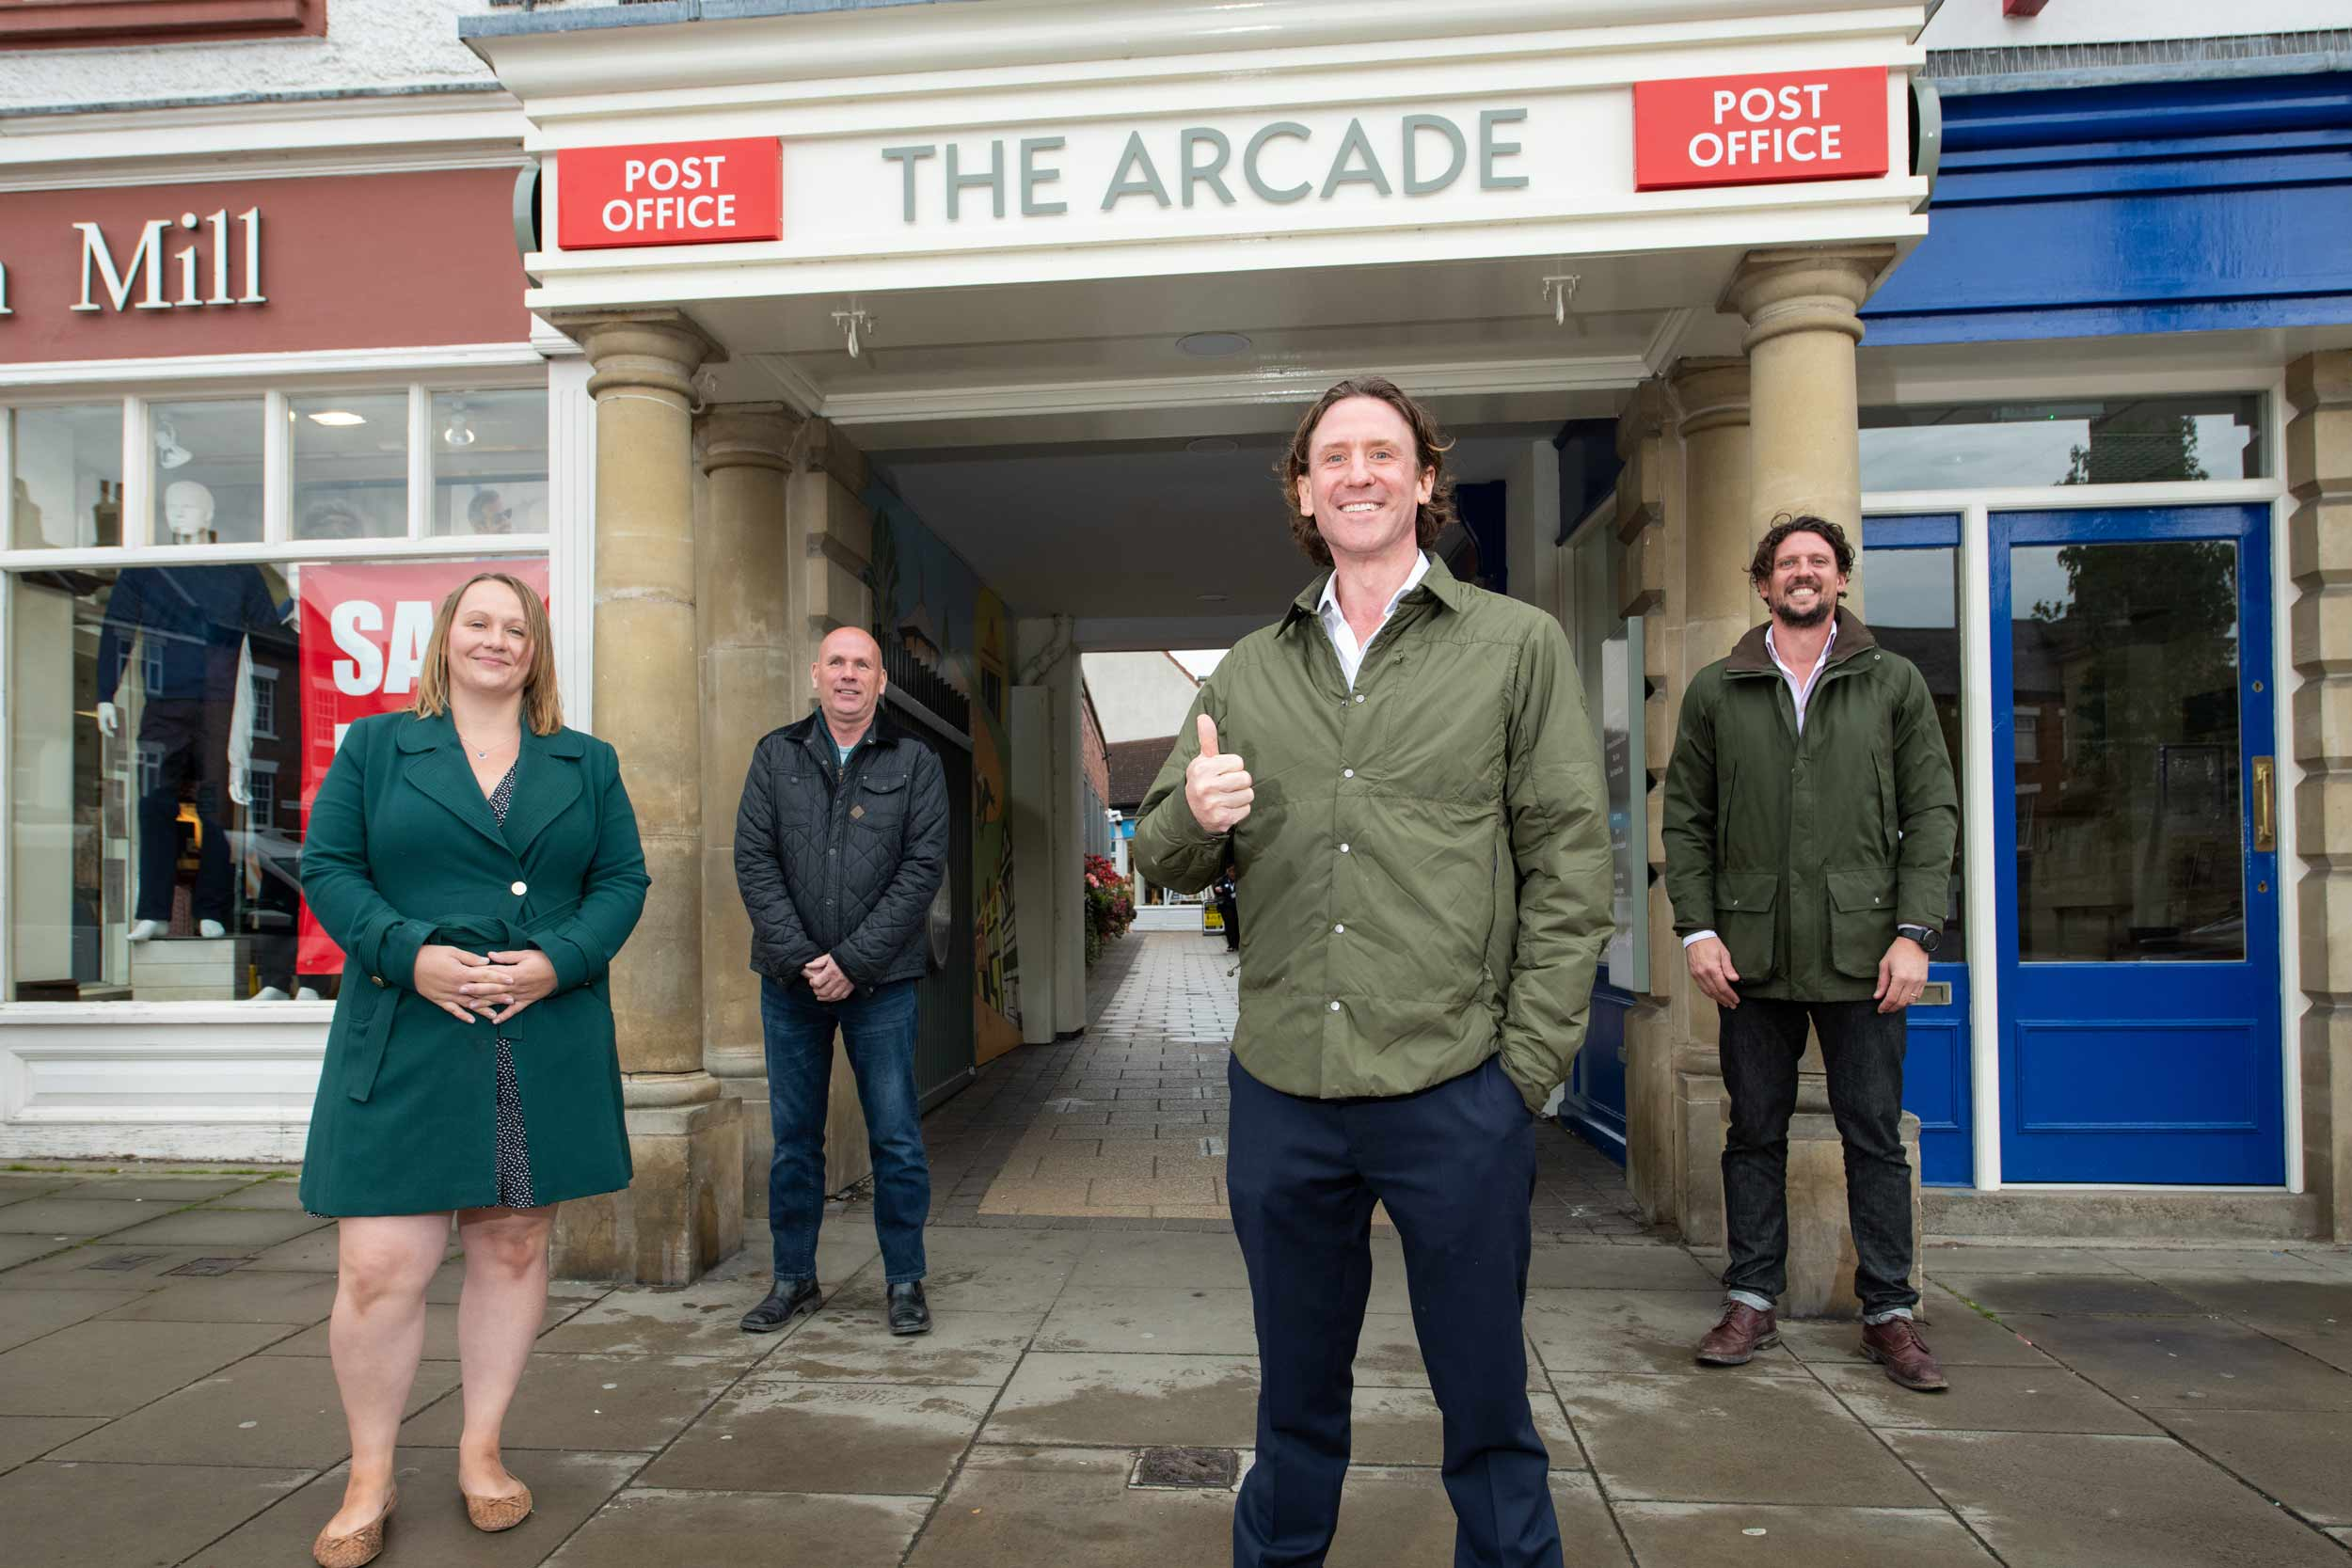 the team from Frank Marshall Estates, who masterminded the refurbishment of the arcade, Kelly Jagger, Chris Balme, Edward Marshall and Jimmy Marshall